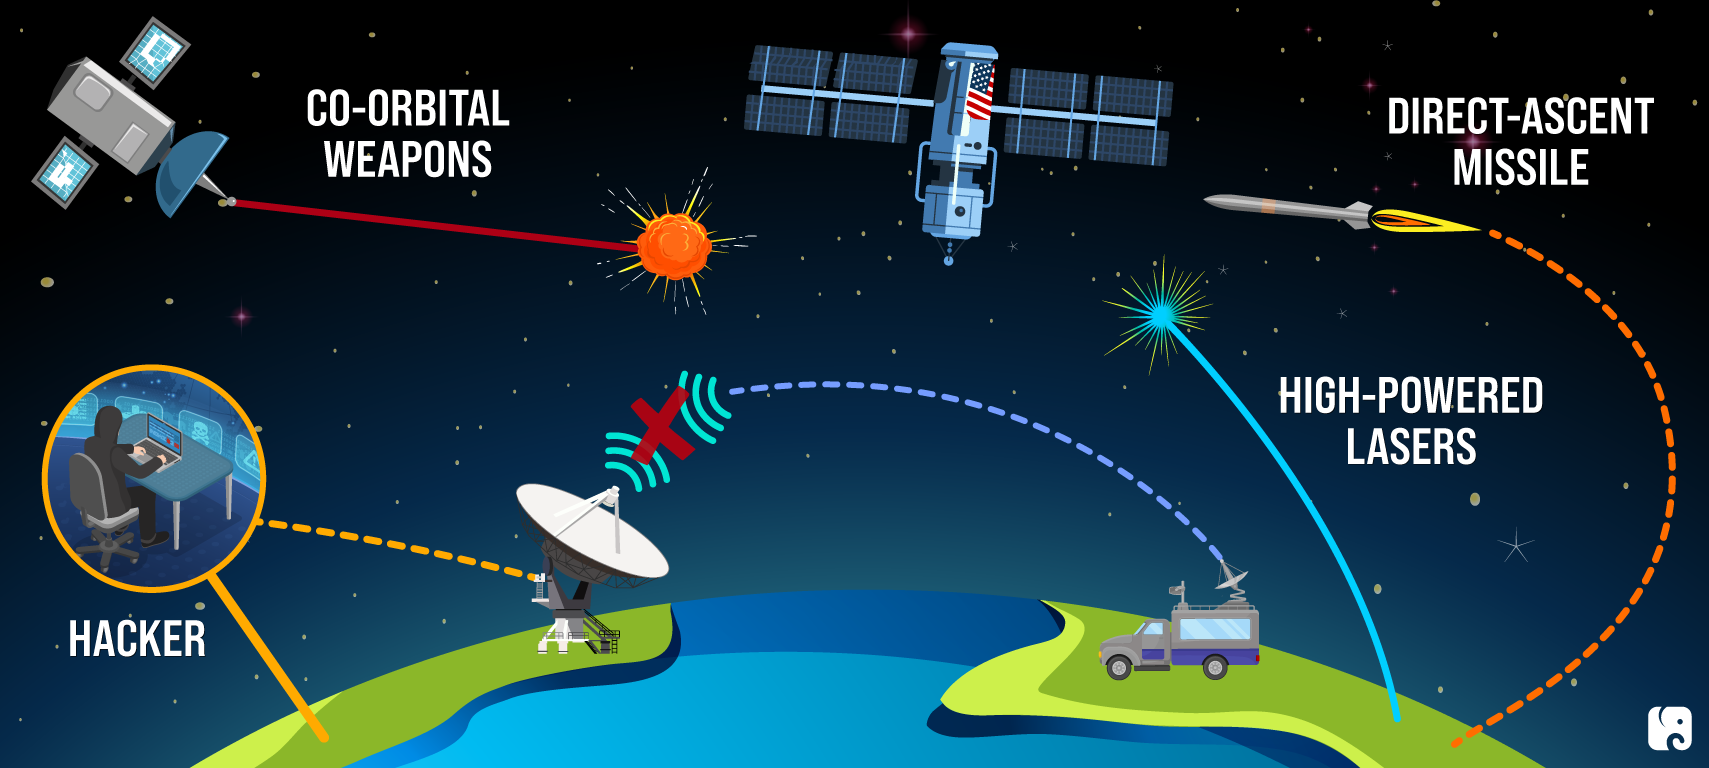 Multiple Threats Facing U.S. Space Systems